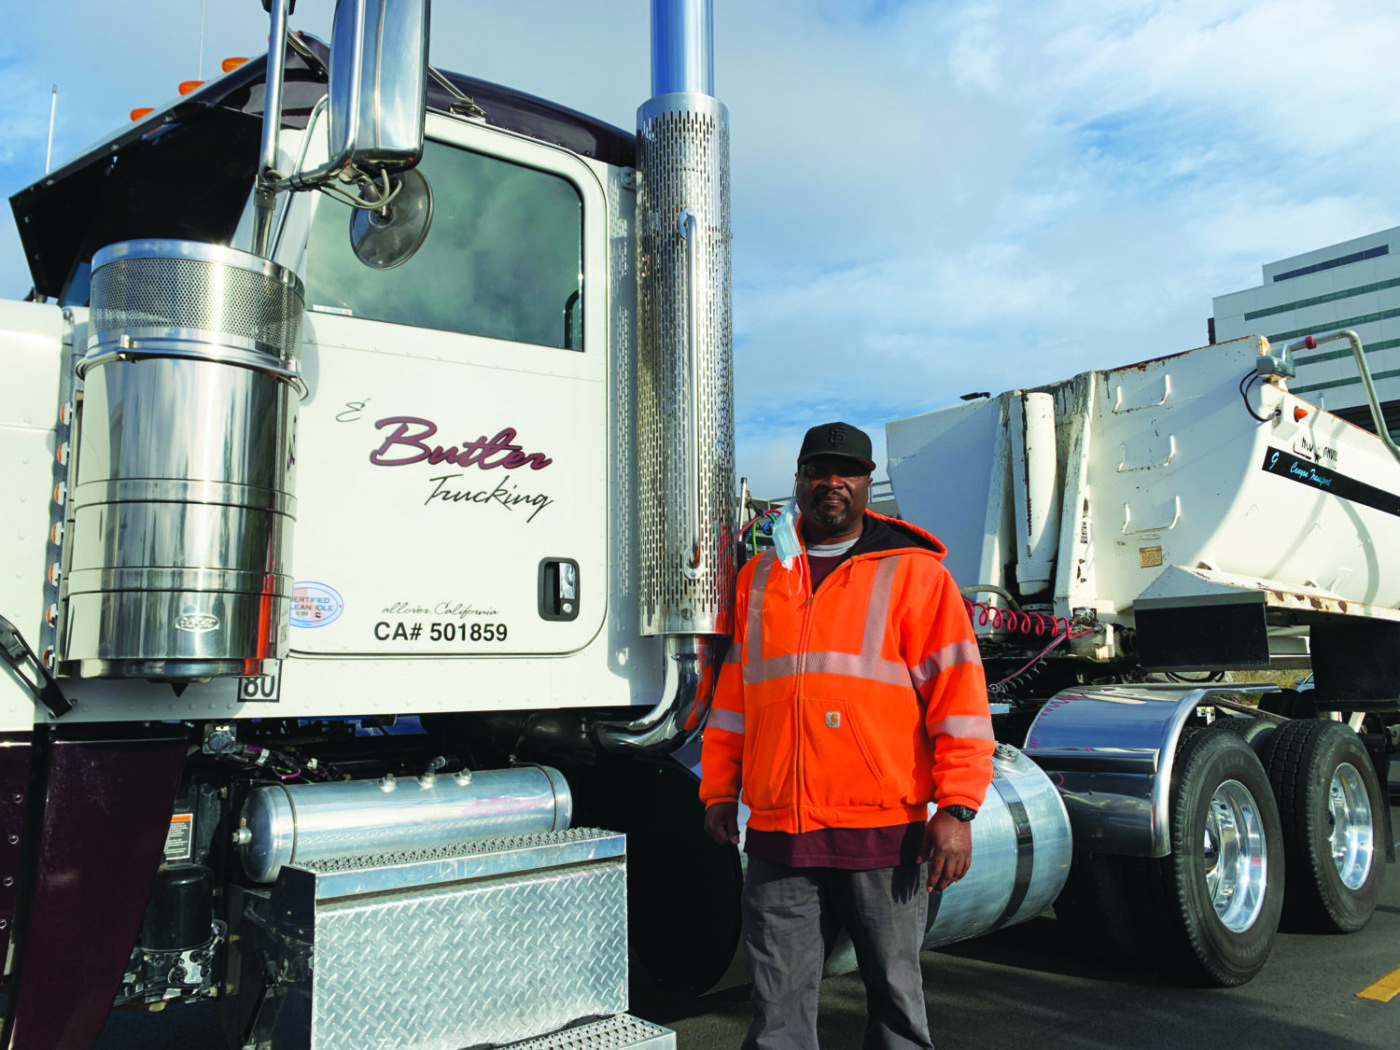 E-Butler-Trucking-UCSF-job-site-shutdown-043021-by-Griffin-1400x1050, Black truckers shut down multi-million-dollar UCSF job site for 4.5 hours, Local News & Views